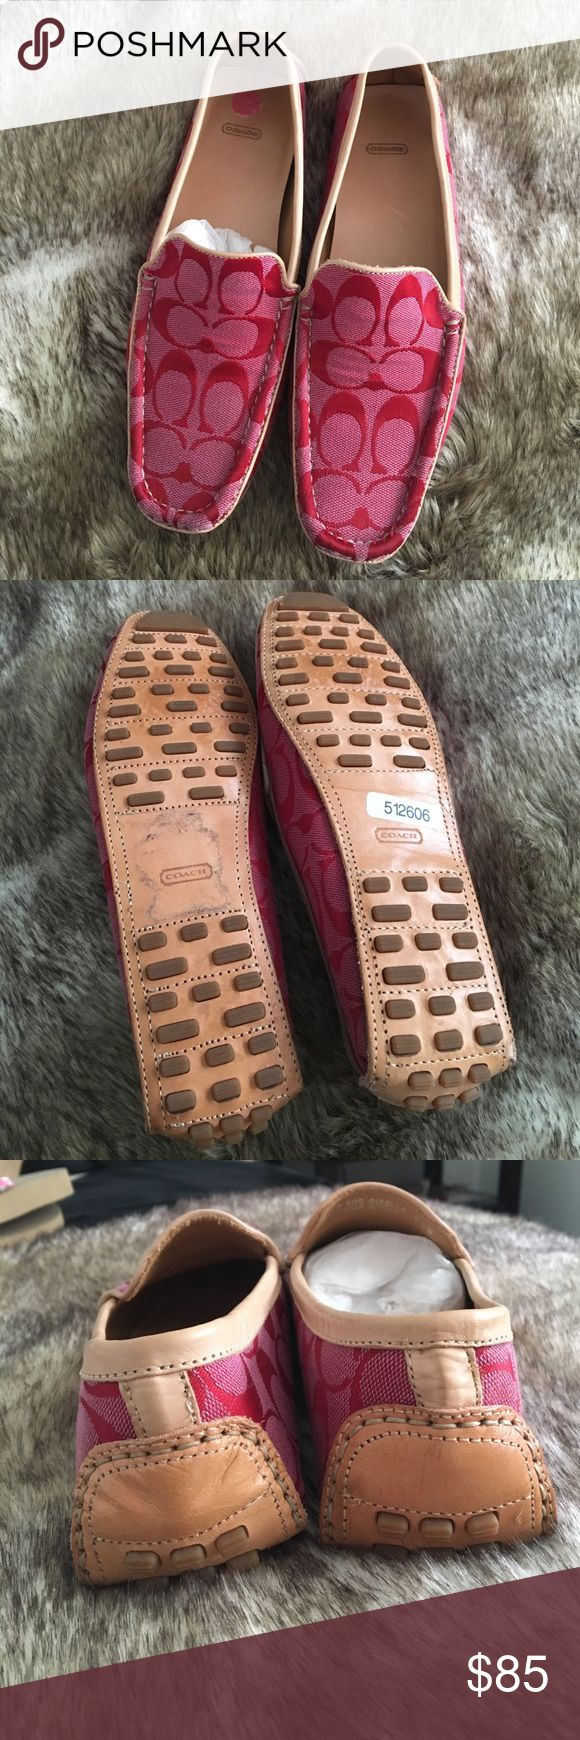 DESIGNER DEALS🐞COACH Christa logo driving loafers Beautiful red Coach logo loafers with leather trim and sole. Never worn, in box! Coach Shoes Flats & Loafers